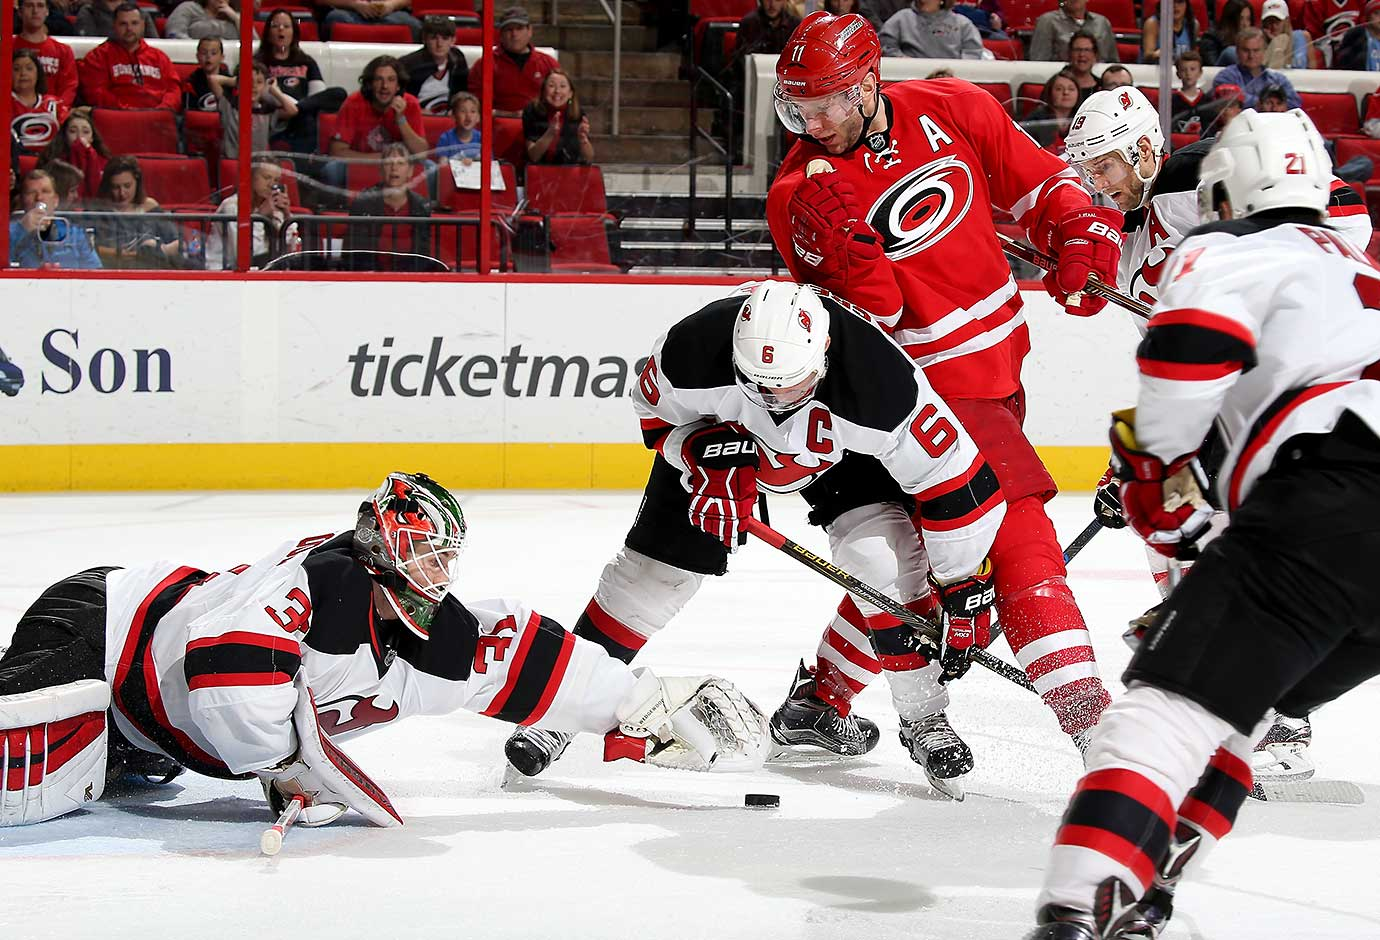 Scott Wedgewood of the New Jersey Devils dives outside the crease to make a glove save as teammate Andy Greene supports and Jordan Staal of the Carolina Hurricanes looks for an opportunity to deflect a loose puck.